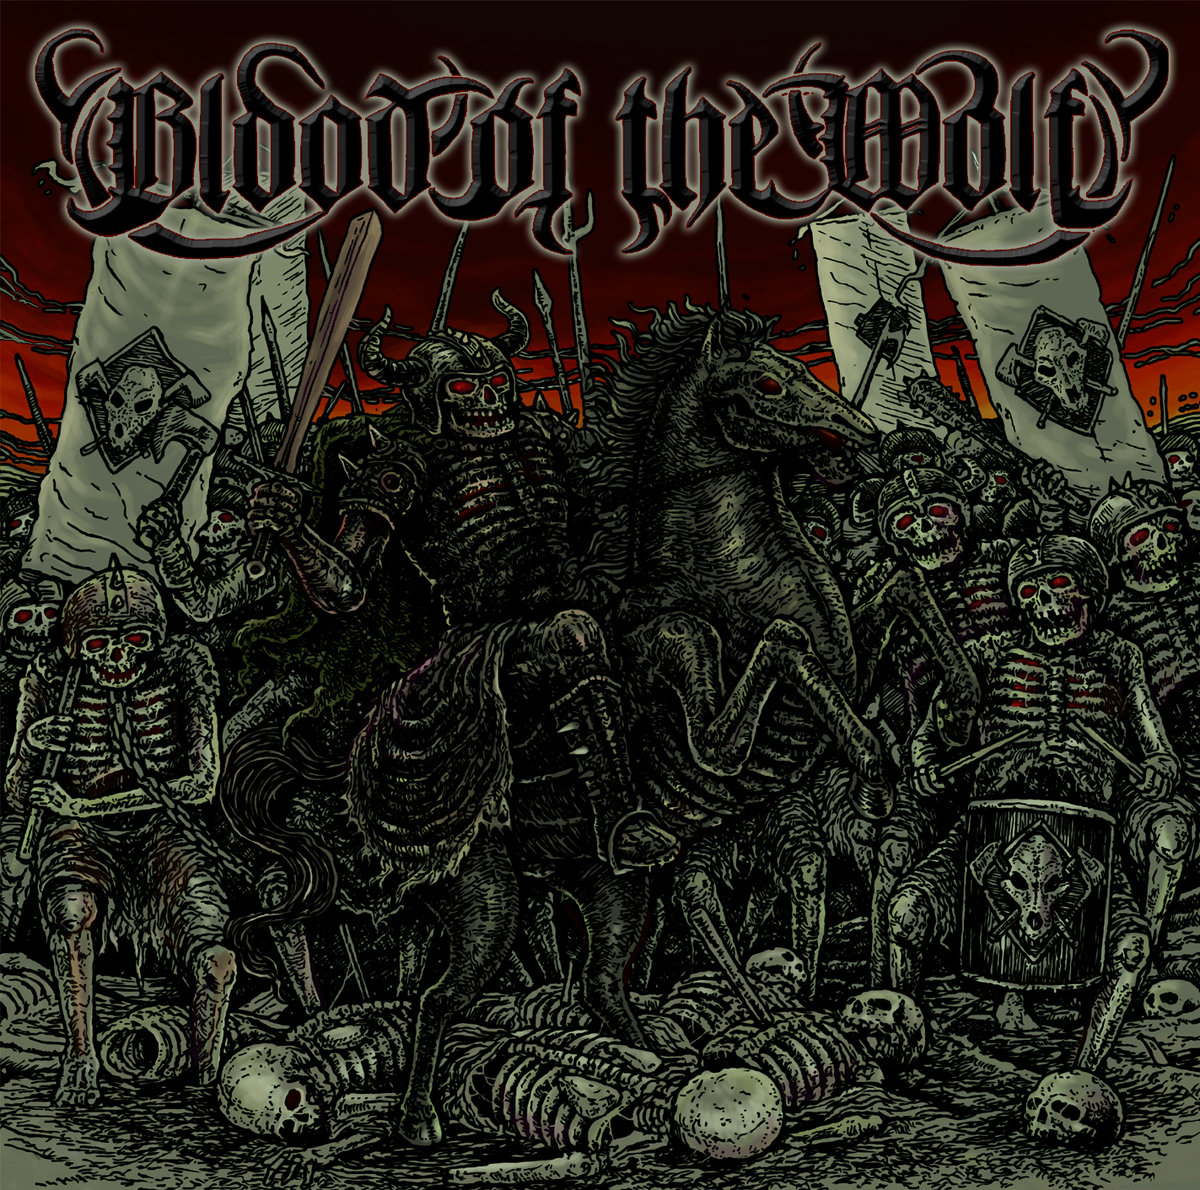 BLOOD OF THE WOLF - New song presented, and details of the